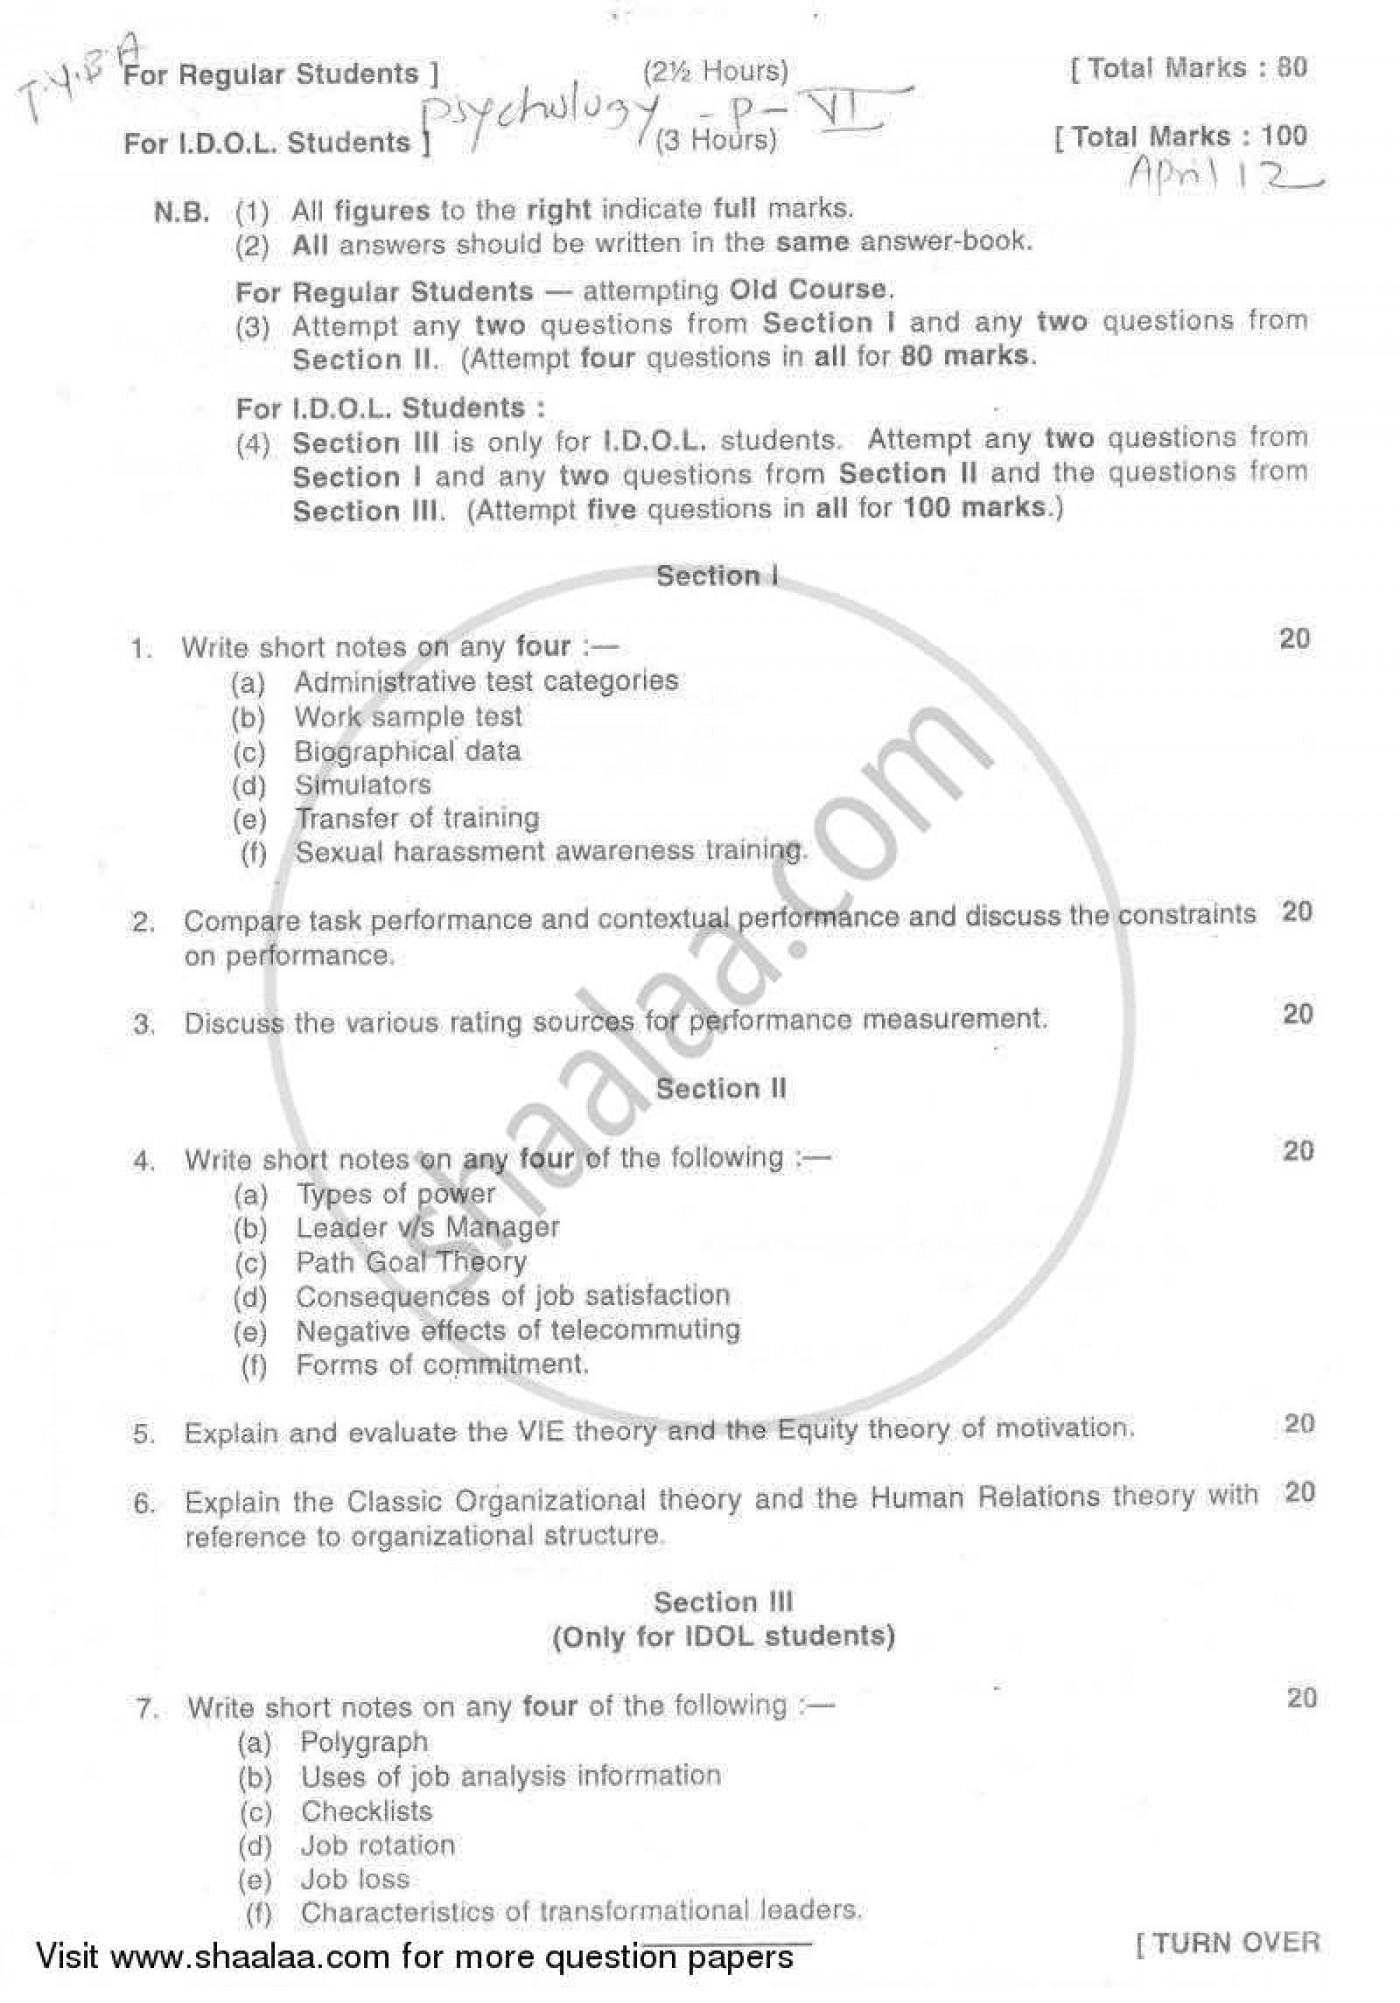 017 Psychologyearch Paper On Dreams University Of Mumbai Bachelor Industrial Organizational T Y Yearly Pattern Semester Tyba 2011 29a03925dfc524f2aa4cb10e4d3da996a Singular Psychology Research News Articles 1400